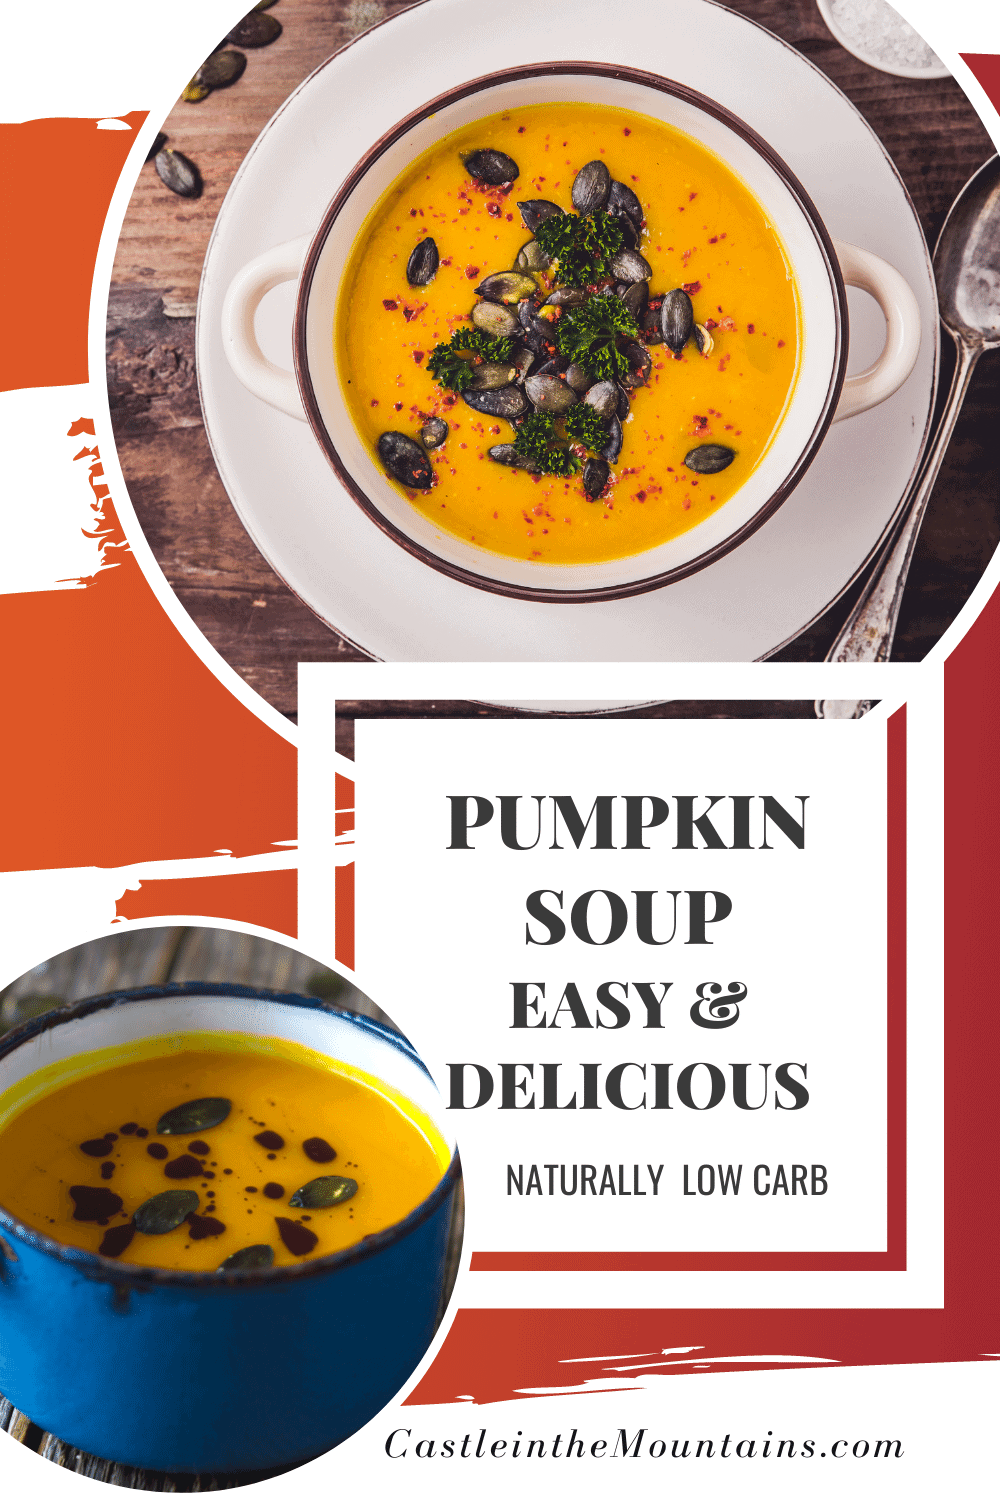 Pumpkin Soup Recipe- How to make Pumpkin Soup